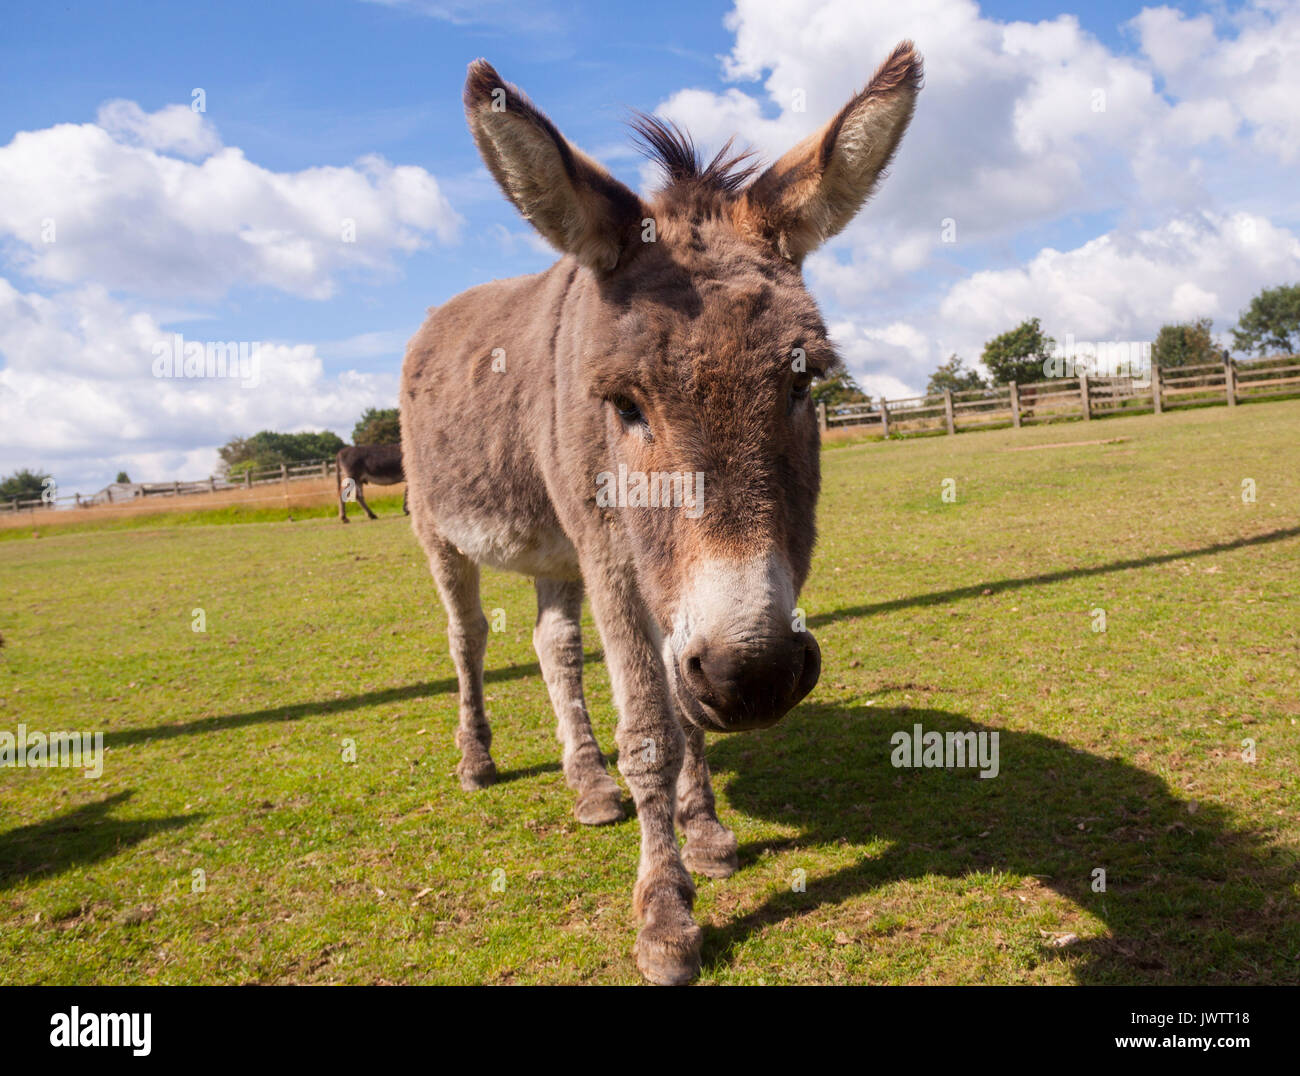 Donkey close up at Sidmouth donkey sanctuary Stock Photo